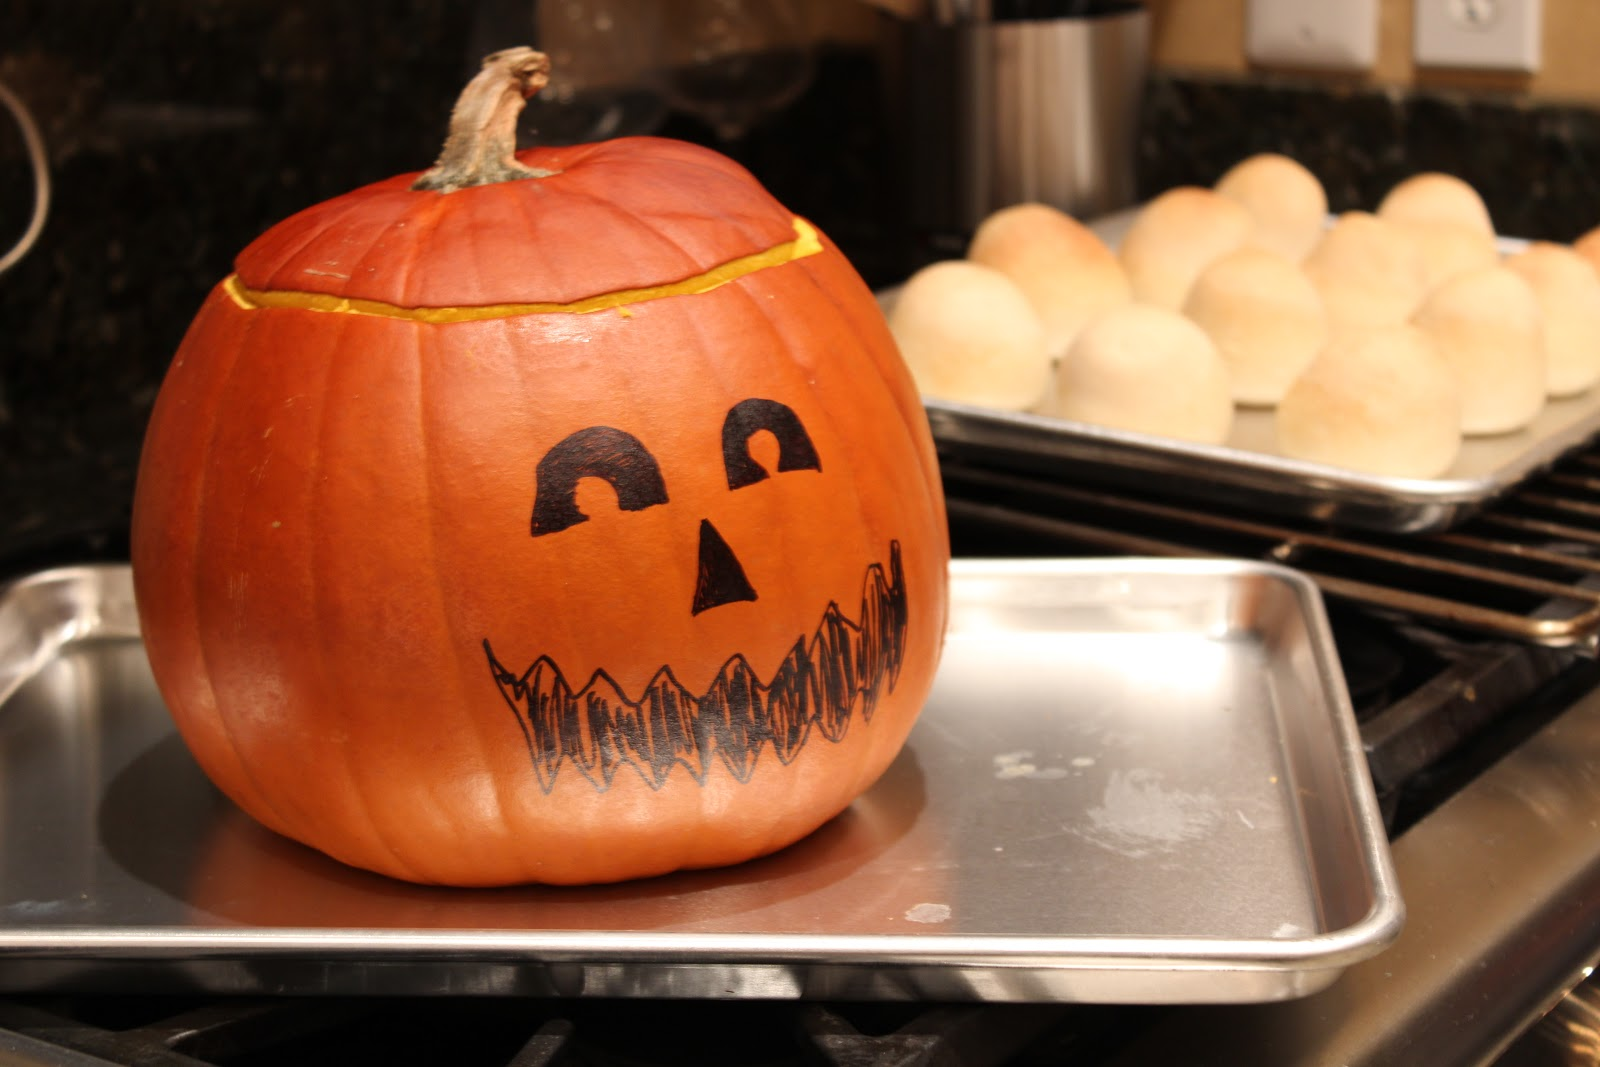 Avis So Cook How To Make A Delicious Dinner In A Pumpkin So Festive